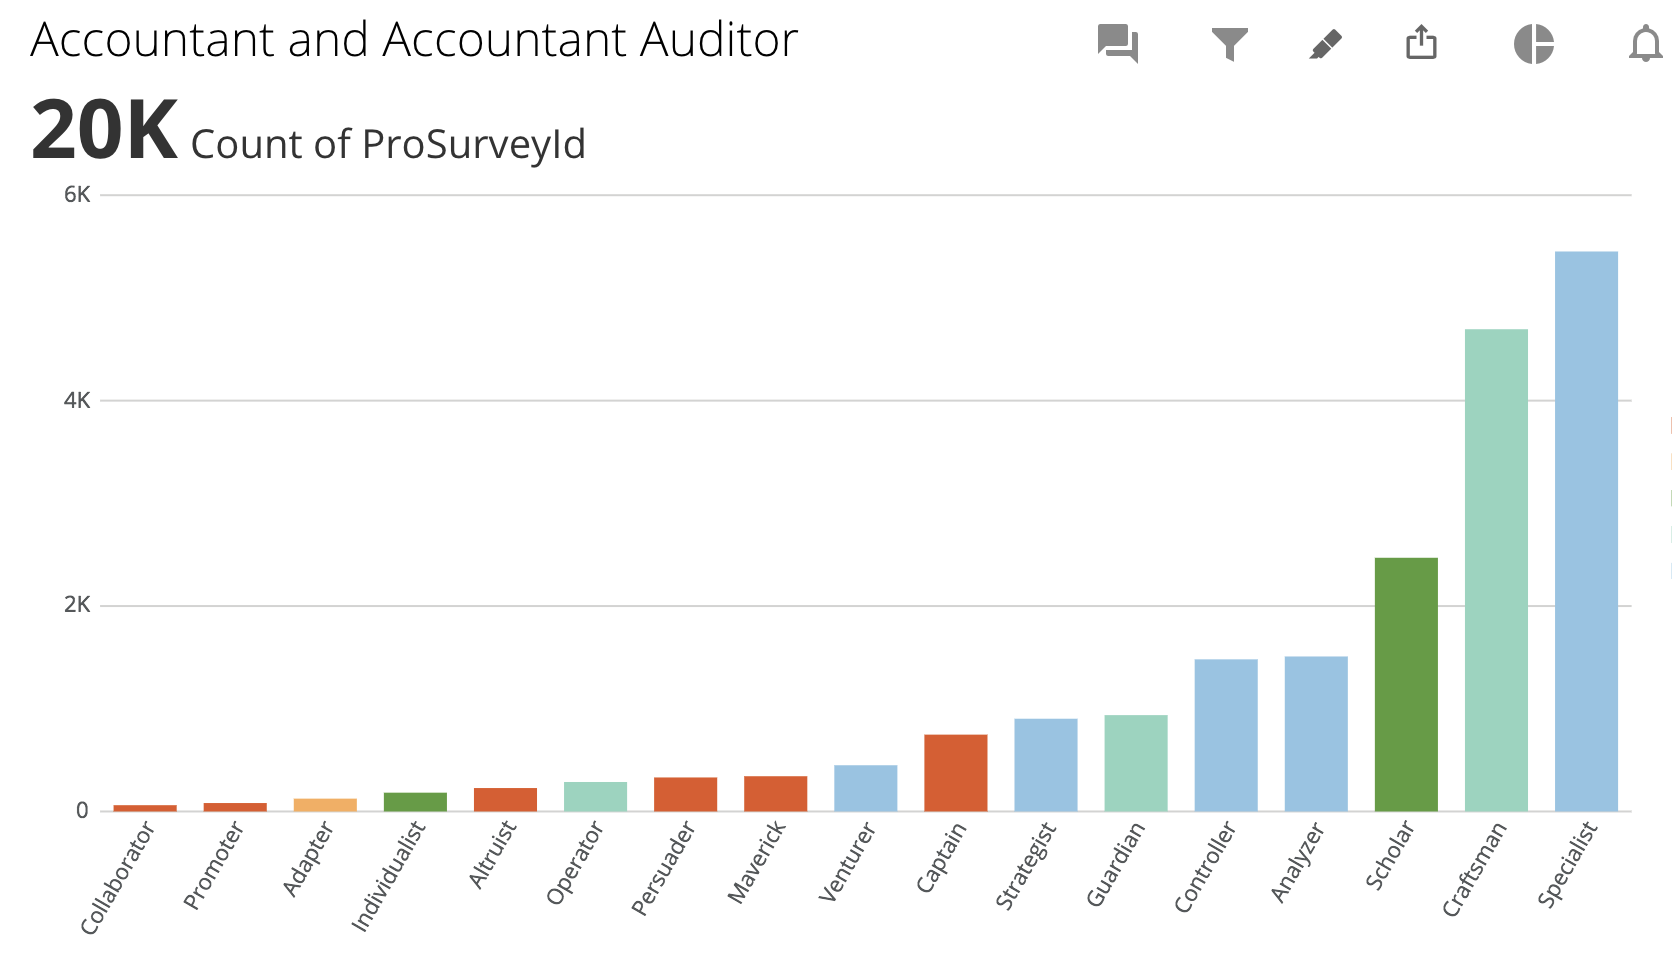 Accountant Reference Profiles